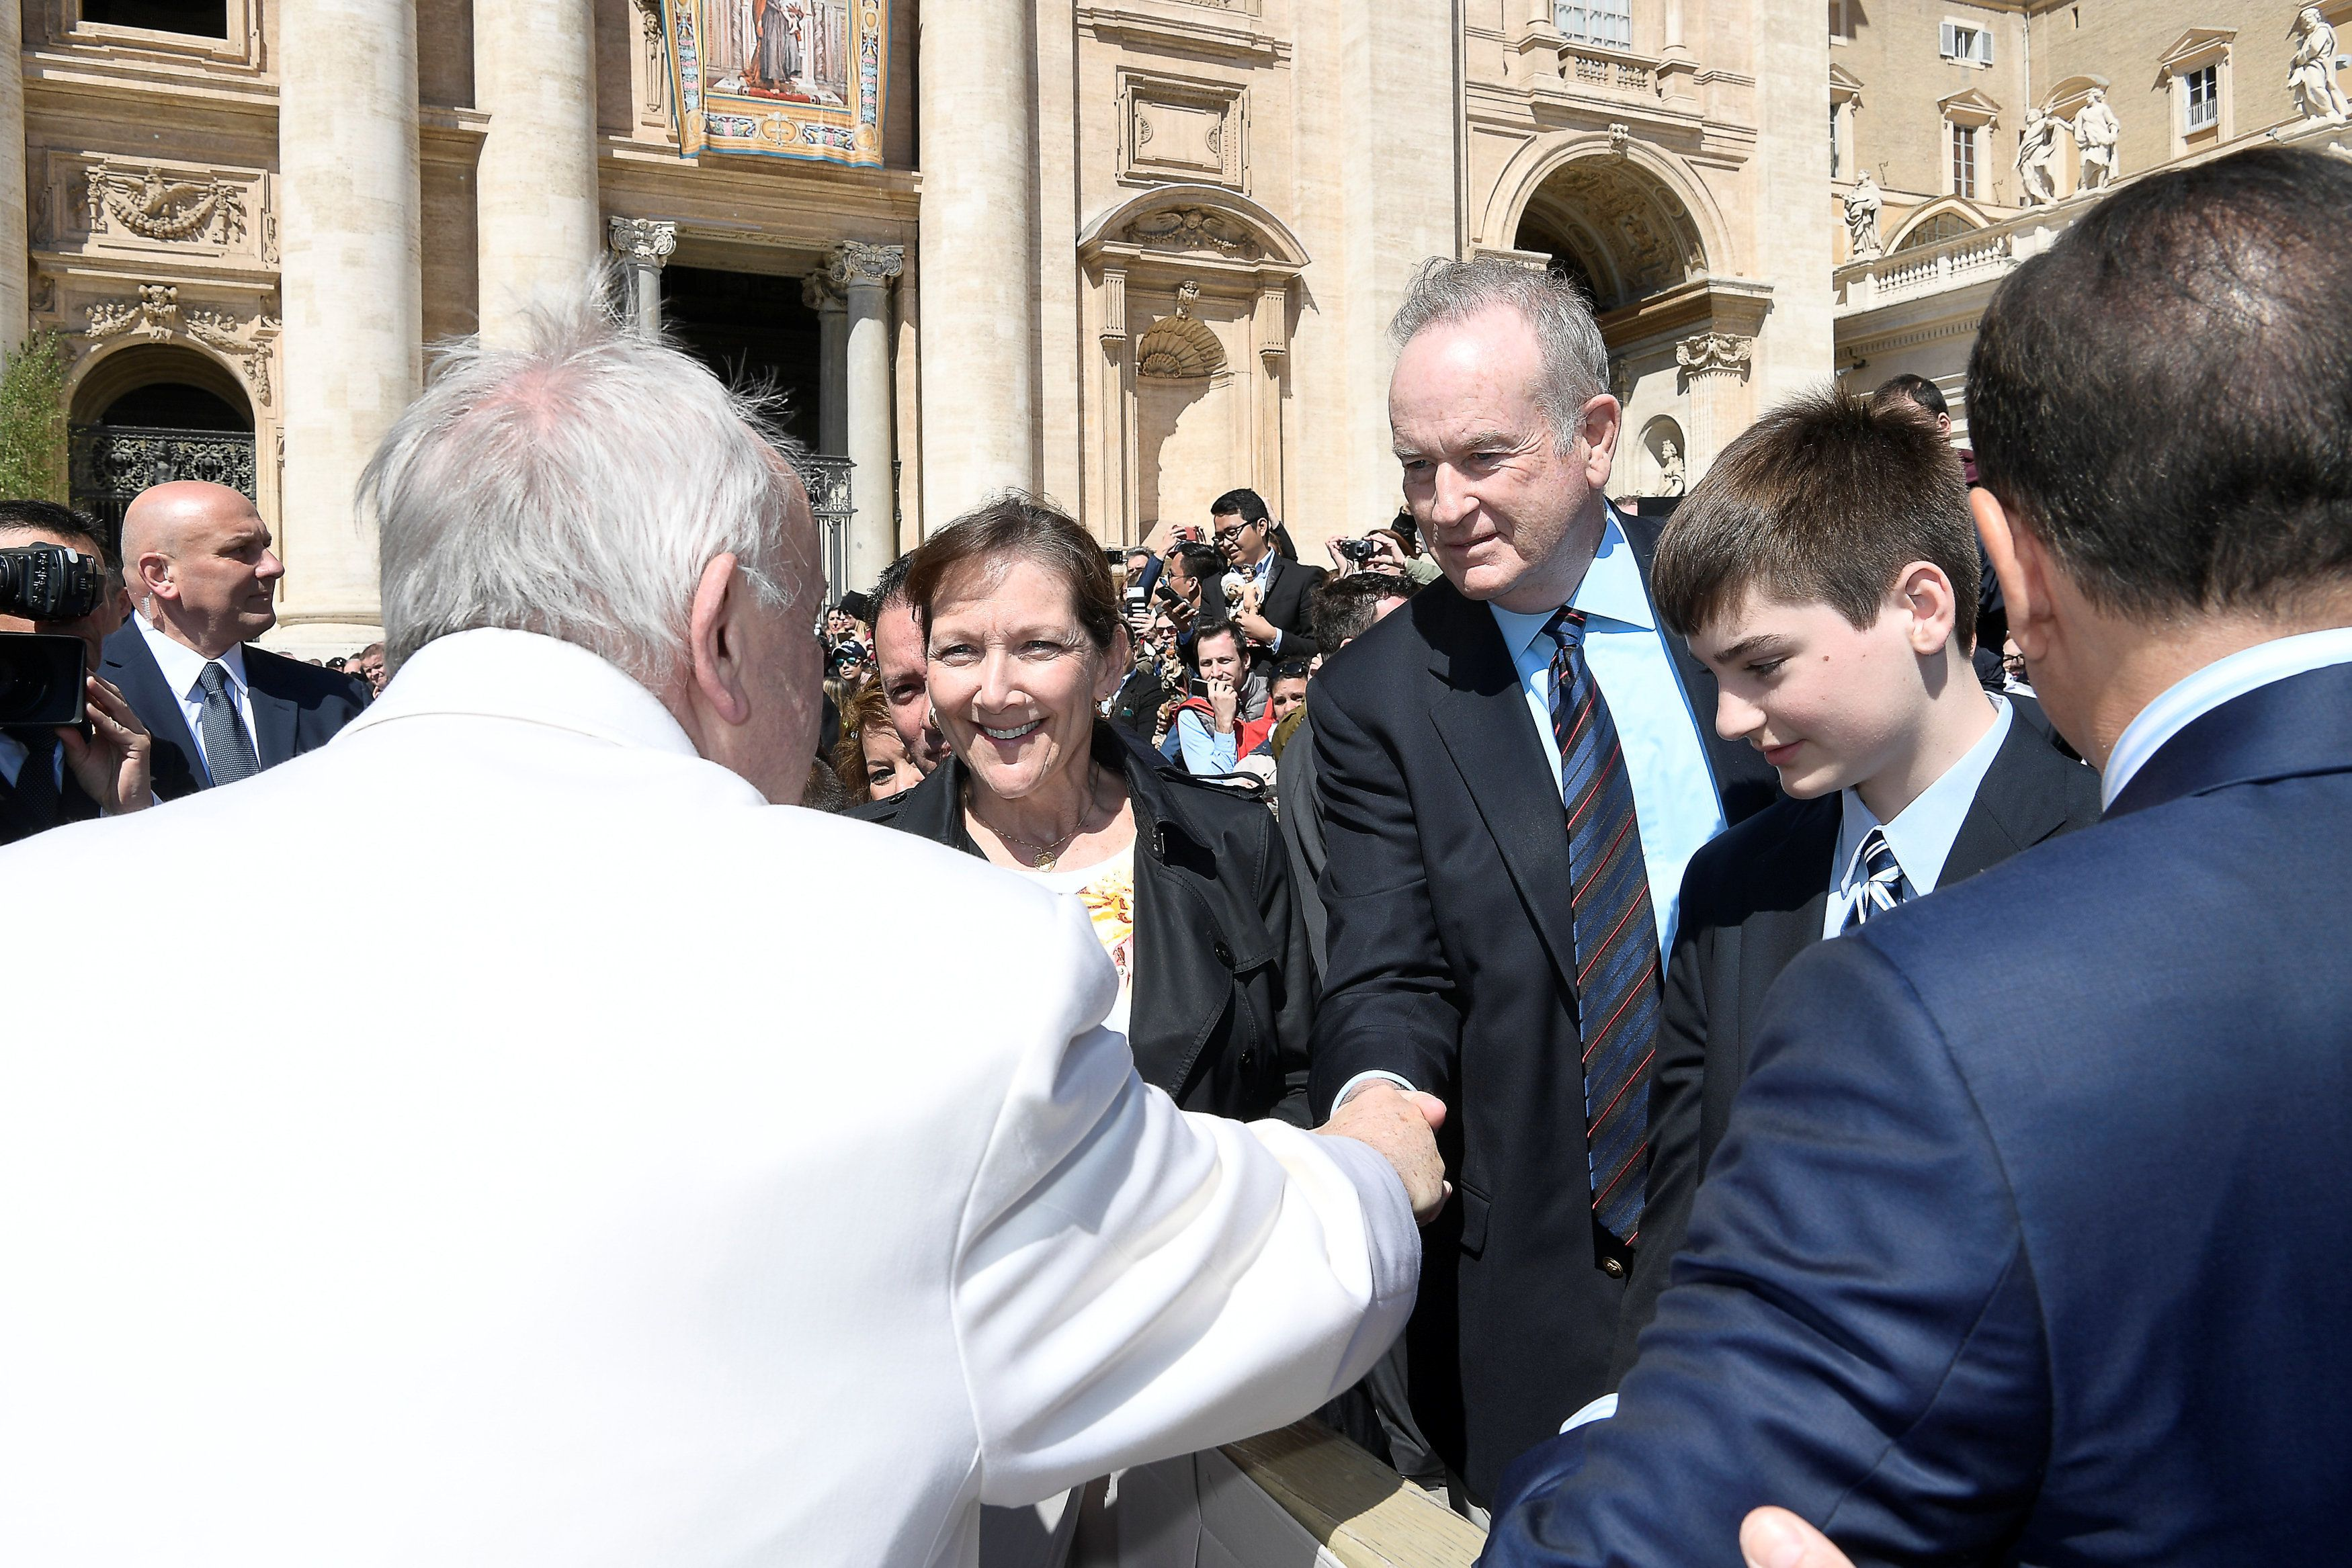 Fox News Channel host Bill O'Reilly shakes hand with Pope Francis during the Wednesday general audience in Saint Peter's squa